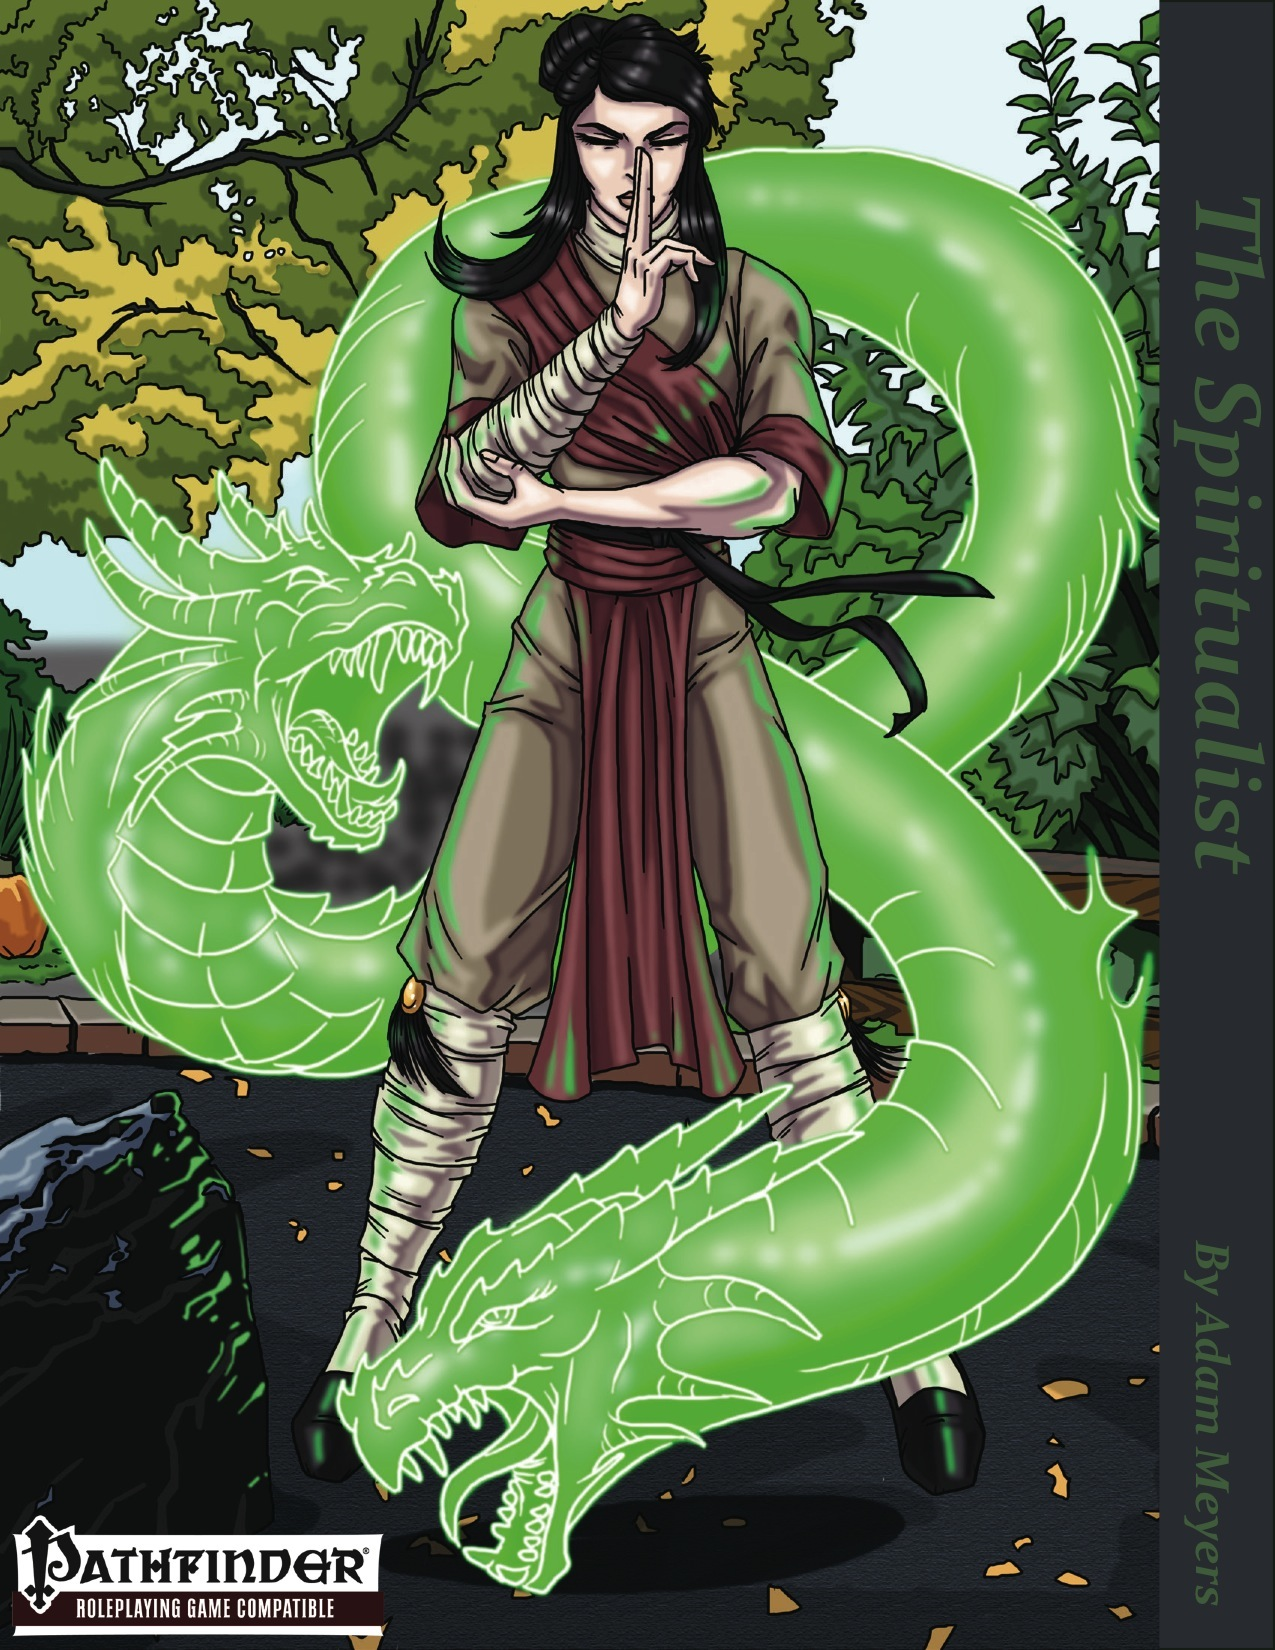 pathfinder the dragons demand pdf